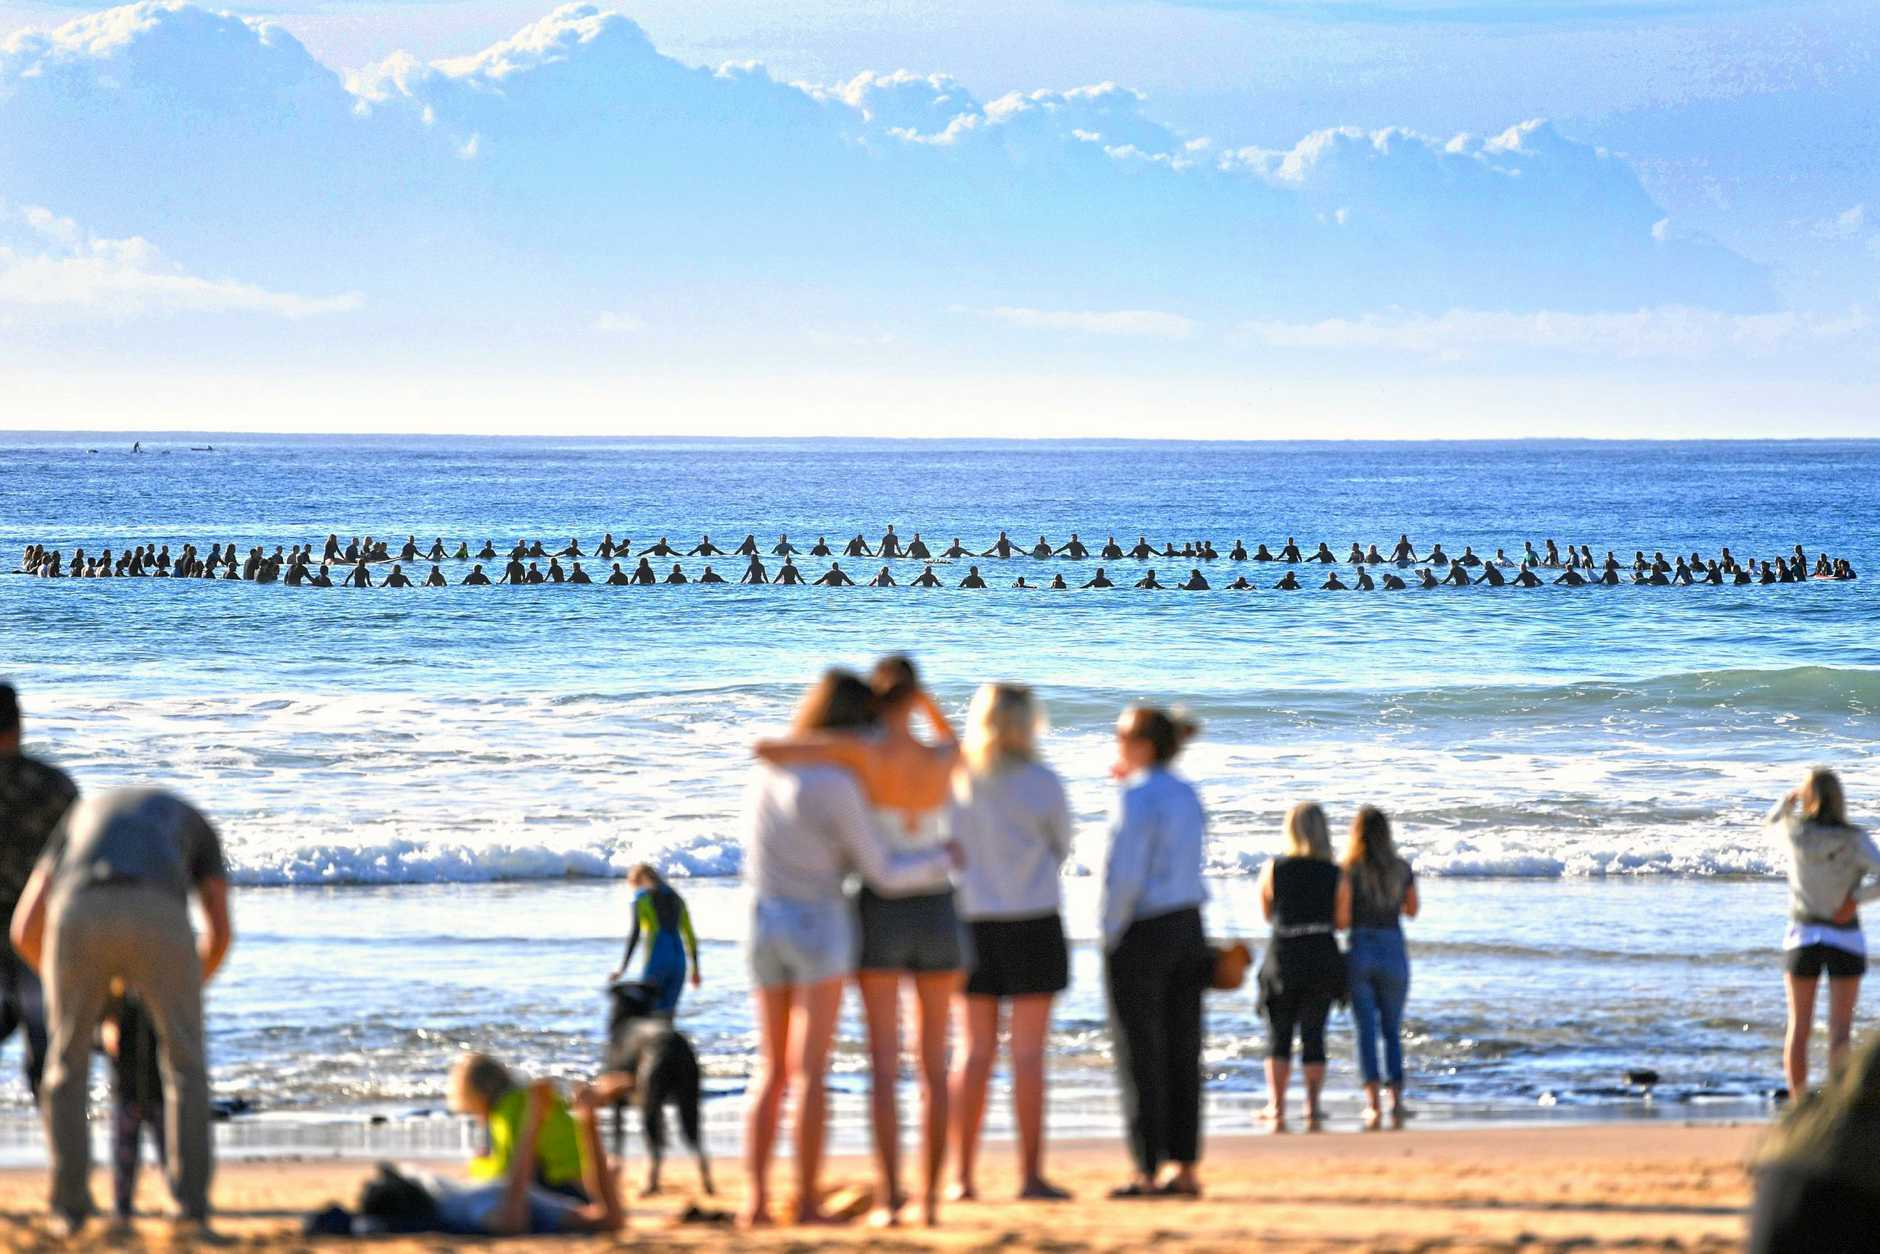 FAREWELL FOR A FRIEND: Hundreds gathered at Mudjimba Beach yesterday to paddle out in honour of Mike Daniell. Onlookers were touched as surfers formed a circle in the ocean for their friend.